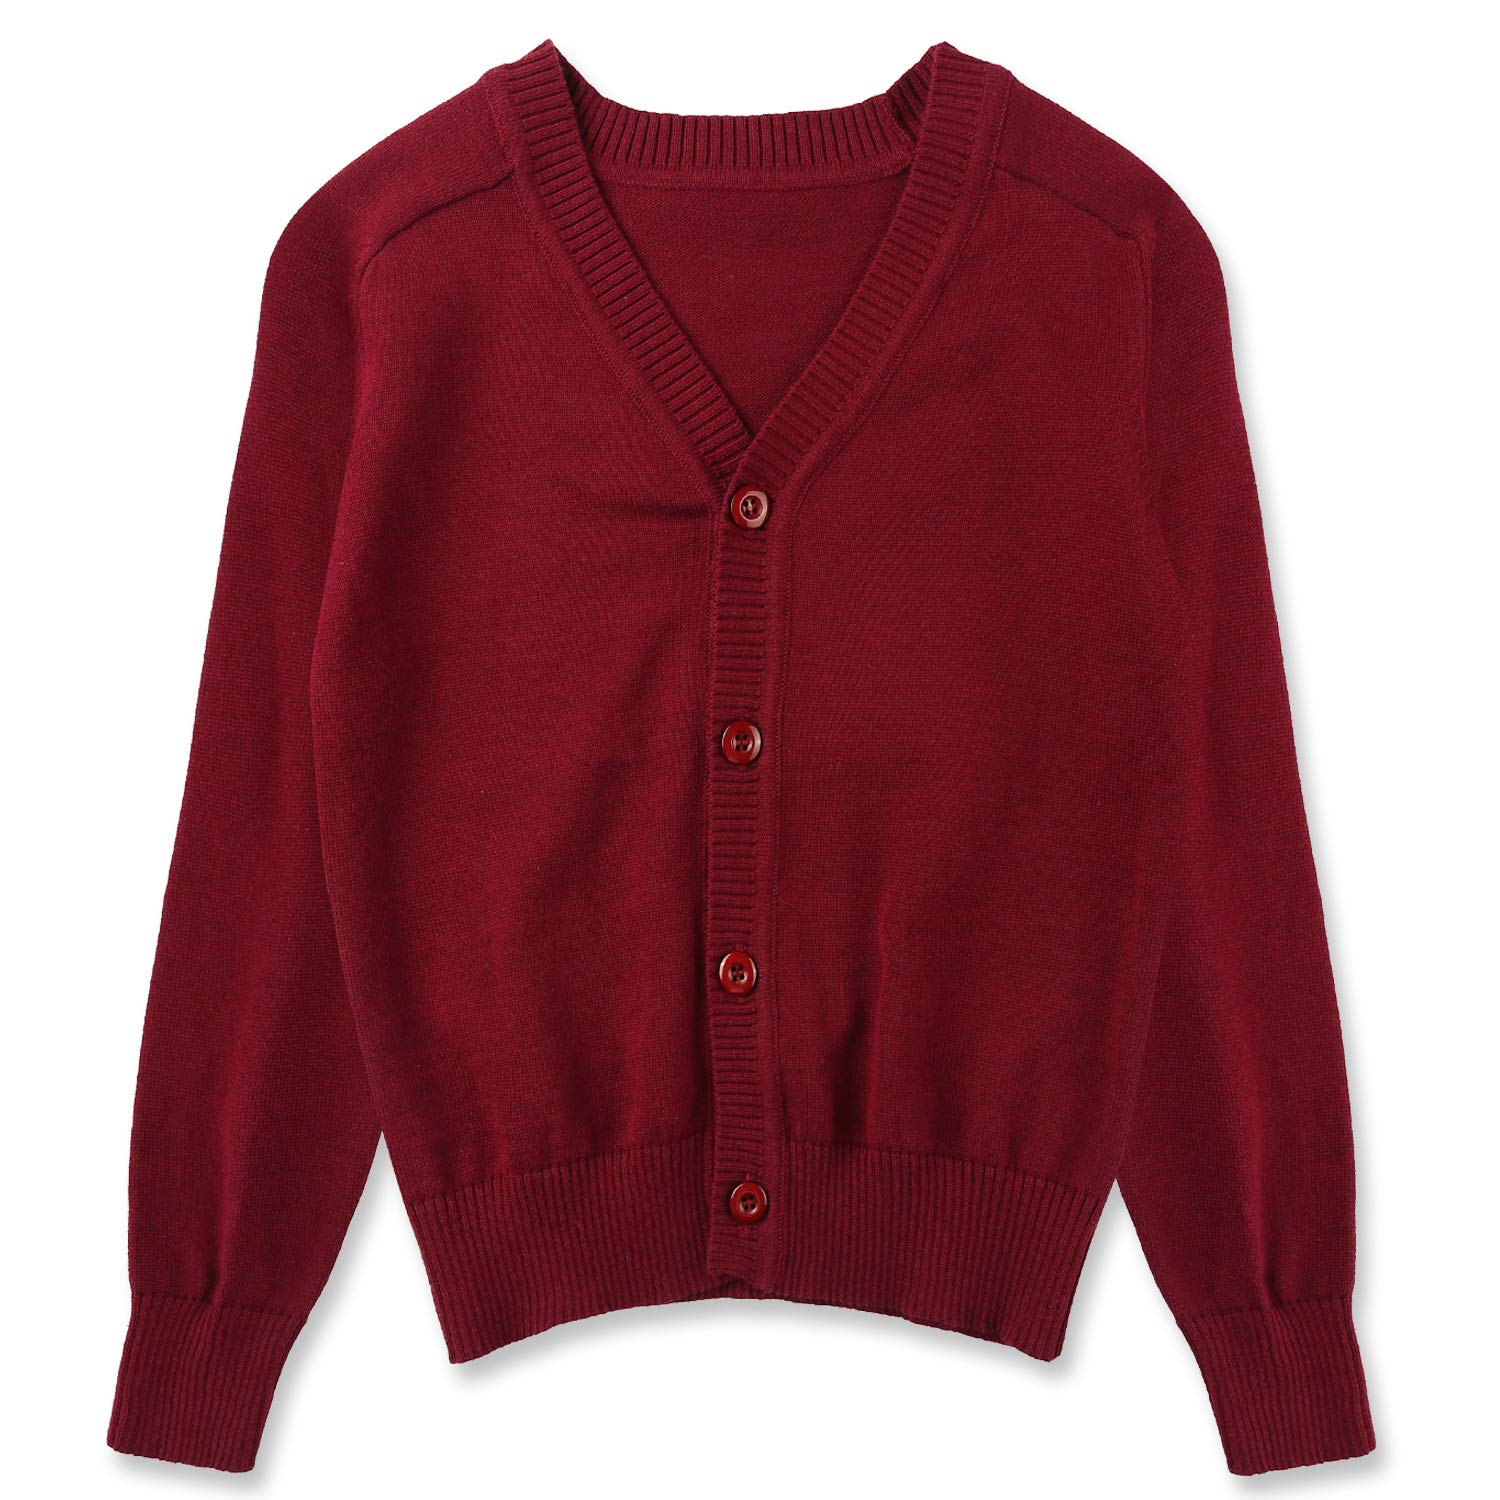 CUNYI Little Boys Button-up Cardigan V-Neck Cotton Knit Sweater Casual Outerwear, Dark Red, 140